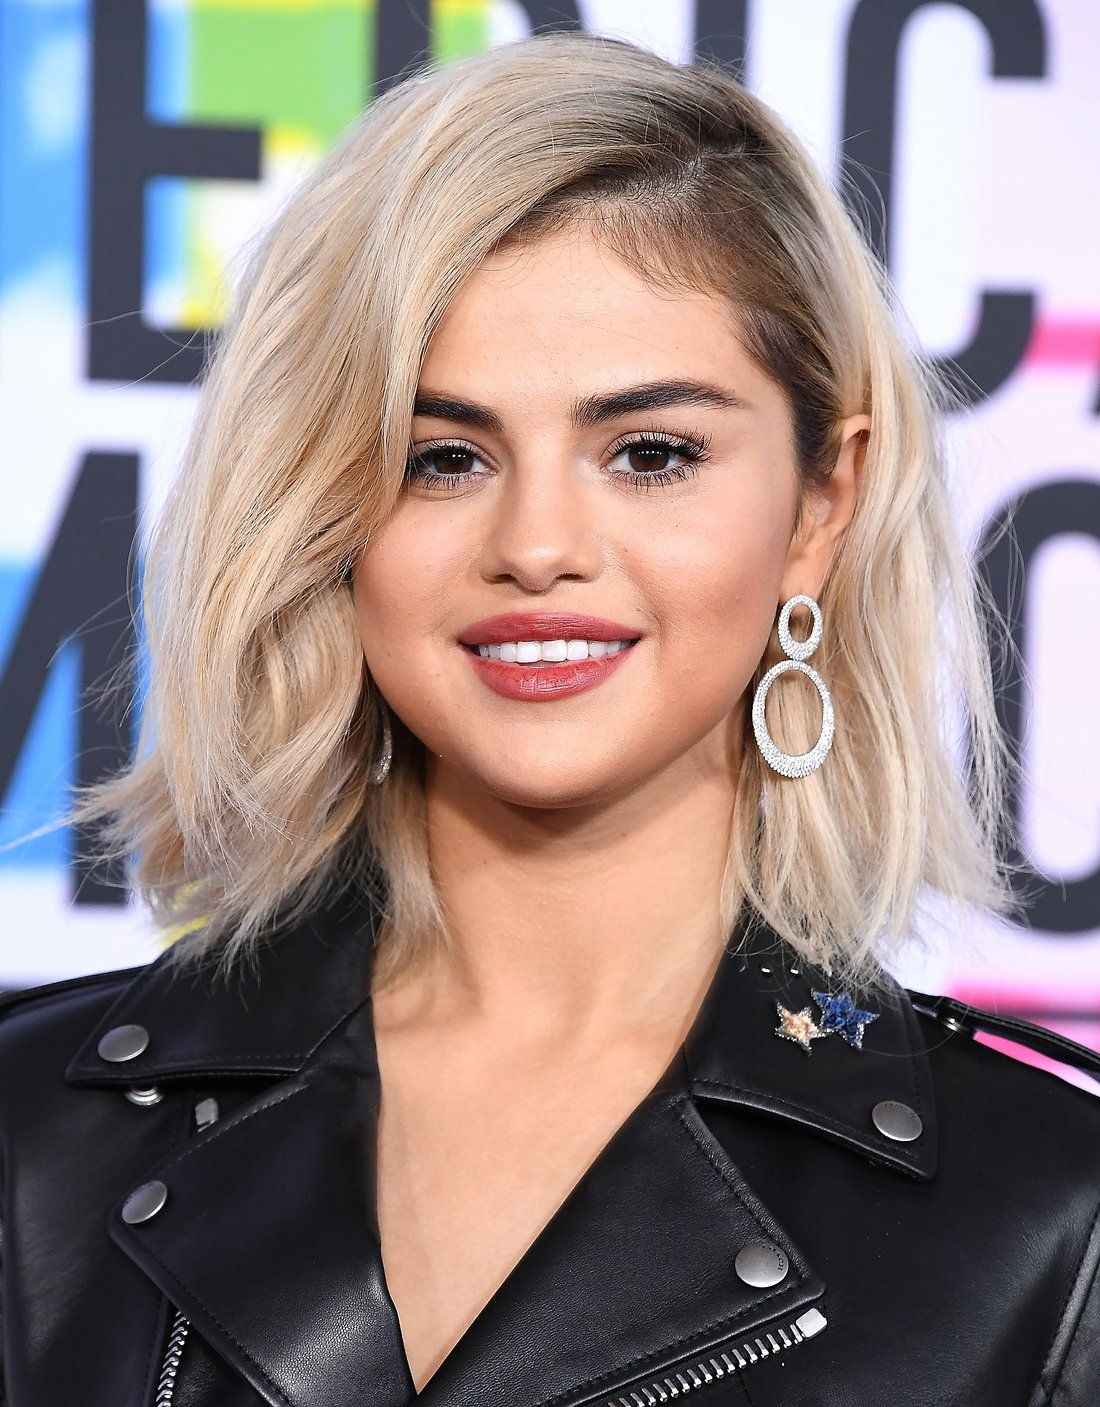 Selena Gomez Is Blonde Now Here S What We Know Selena Gomez Blonde Hair Selena Gomez Hair Jennifer Lopez Hair